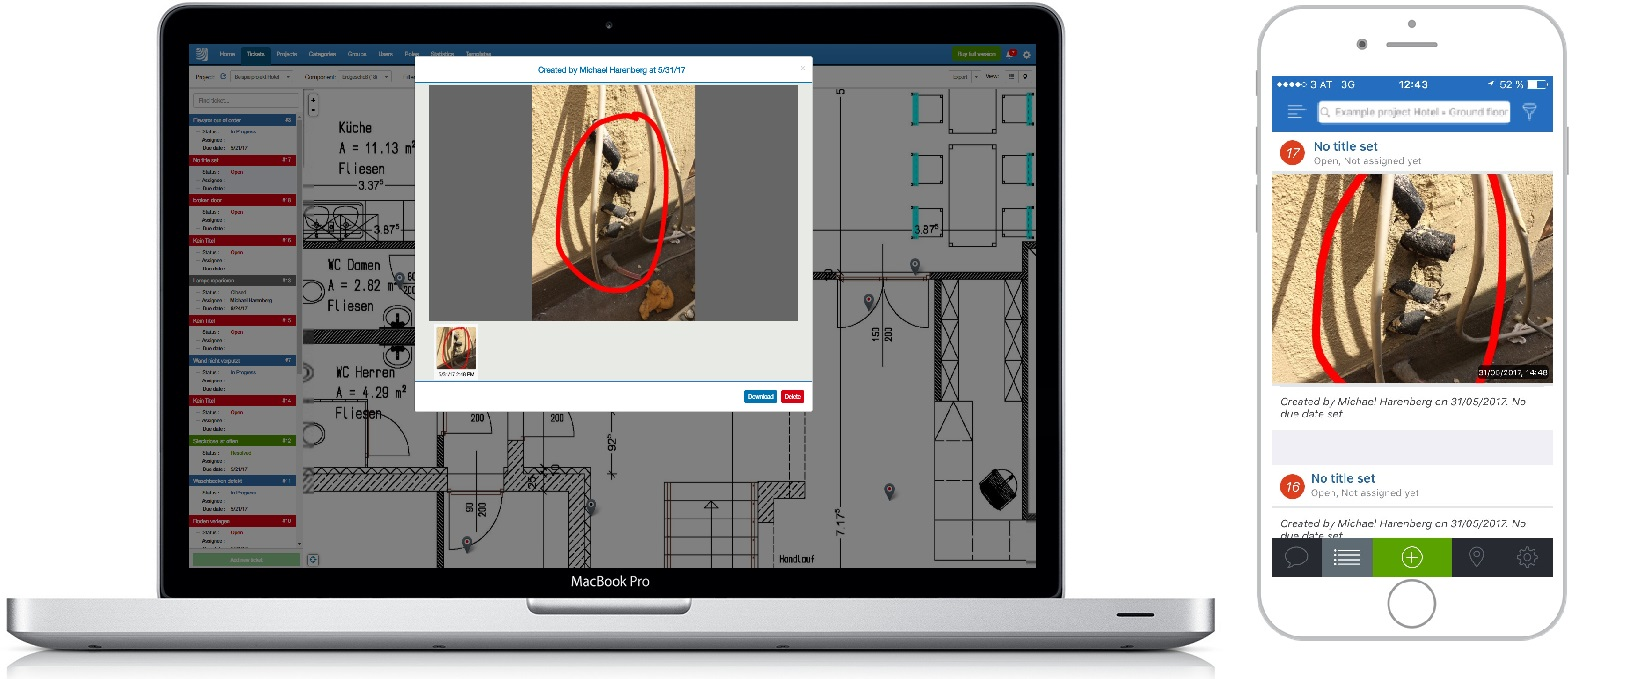 PlanRadar construction tracking software